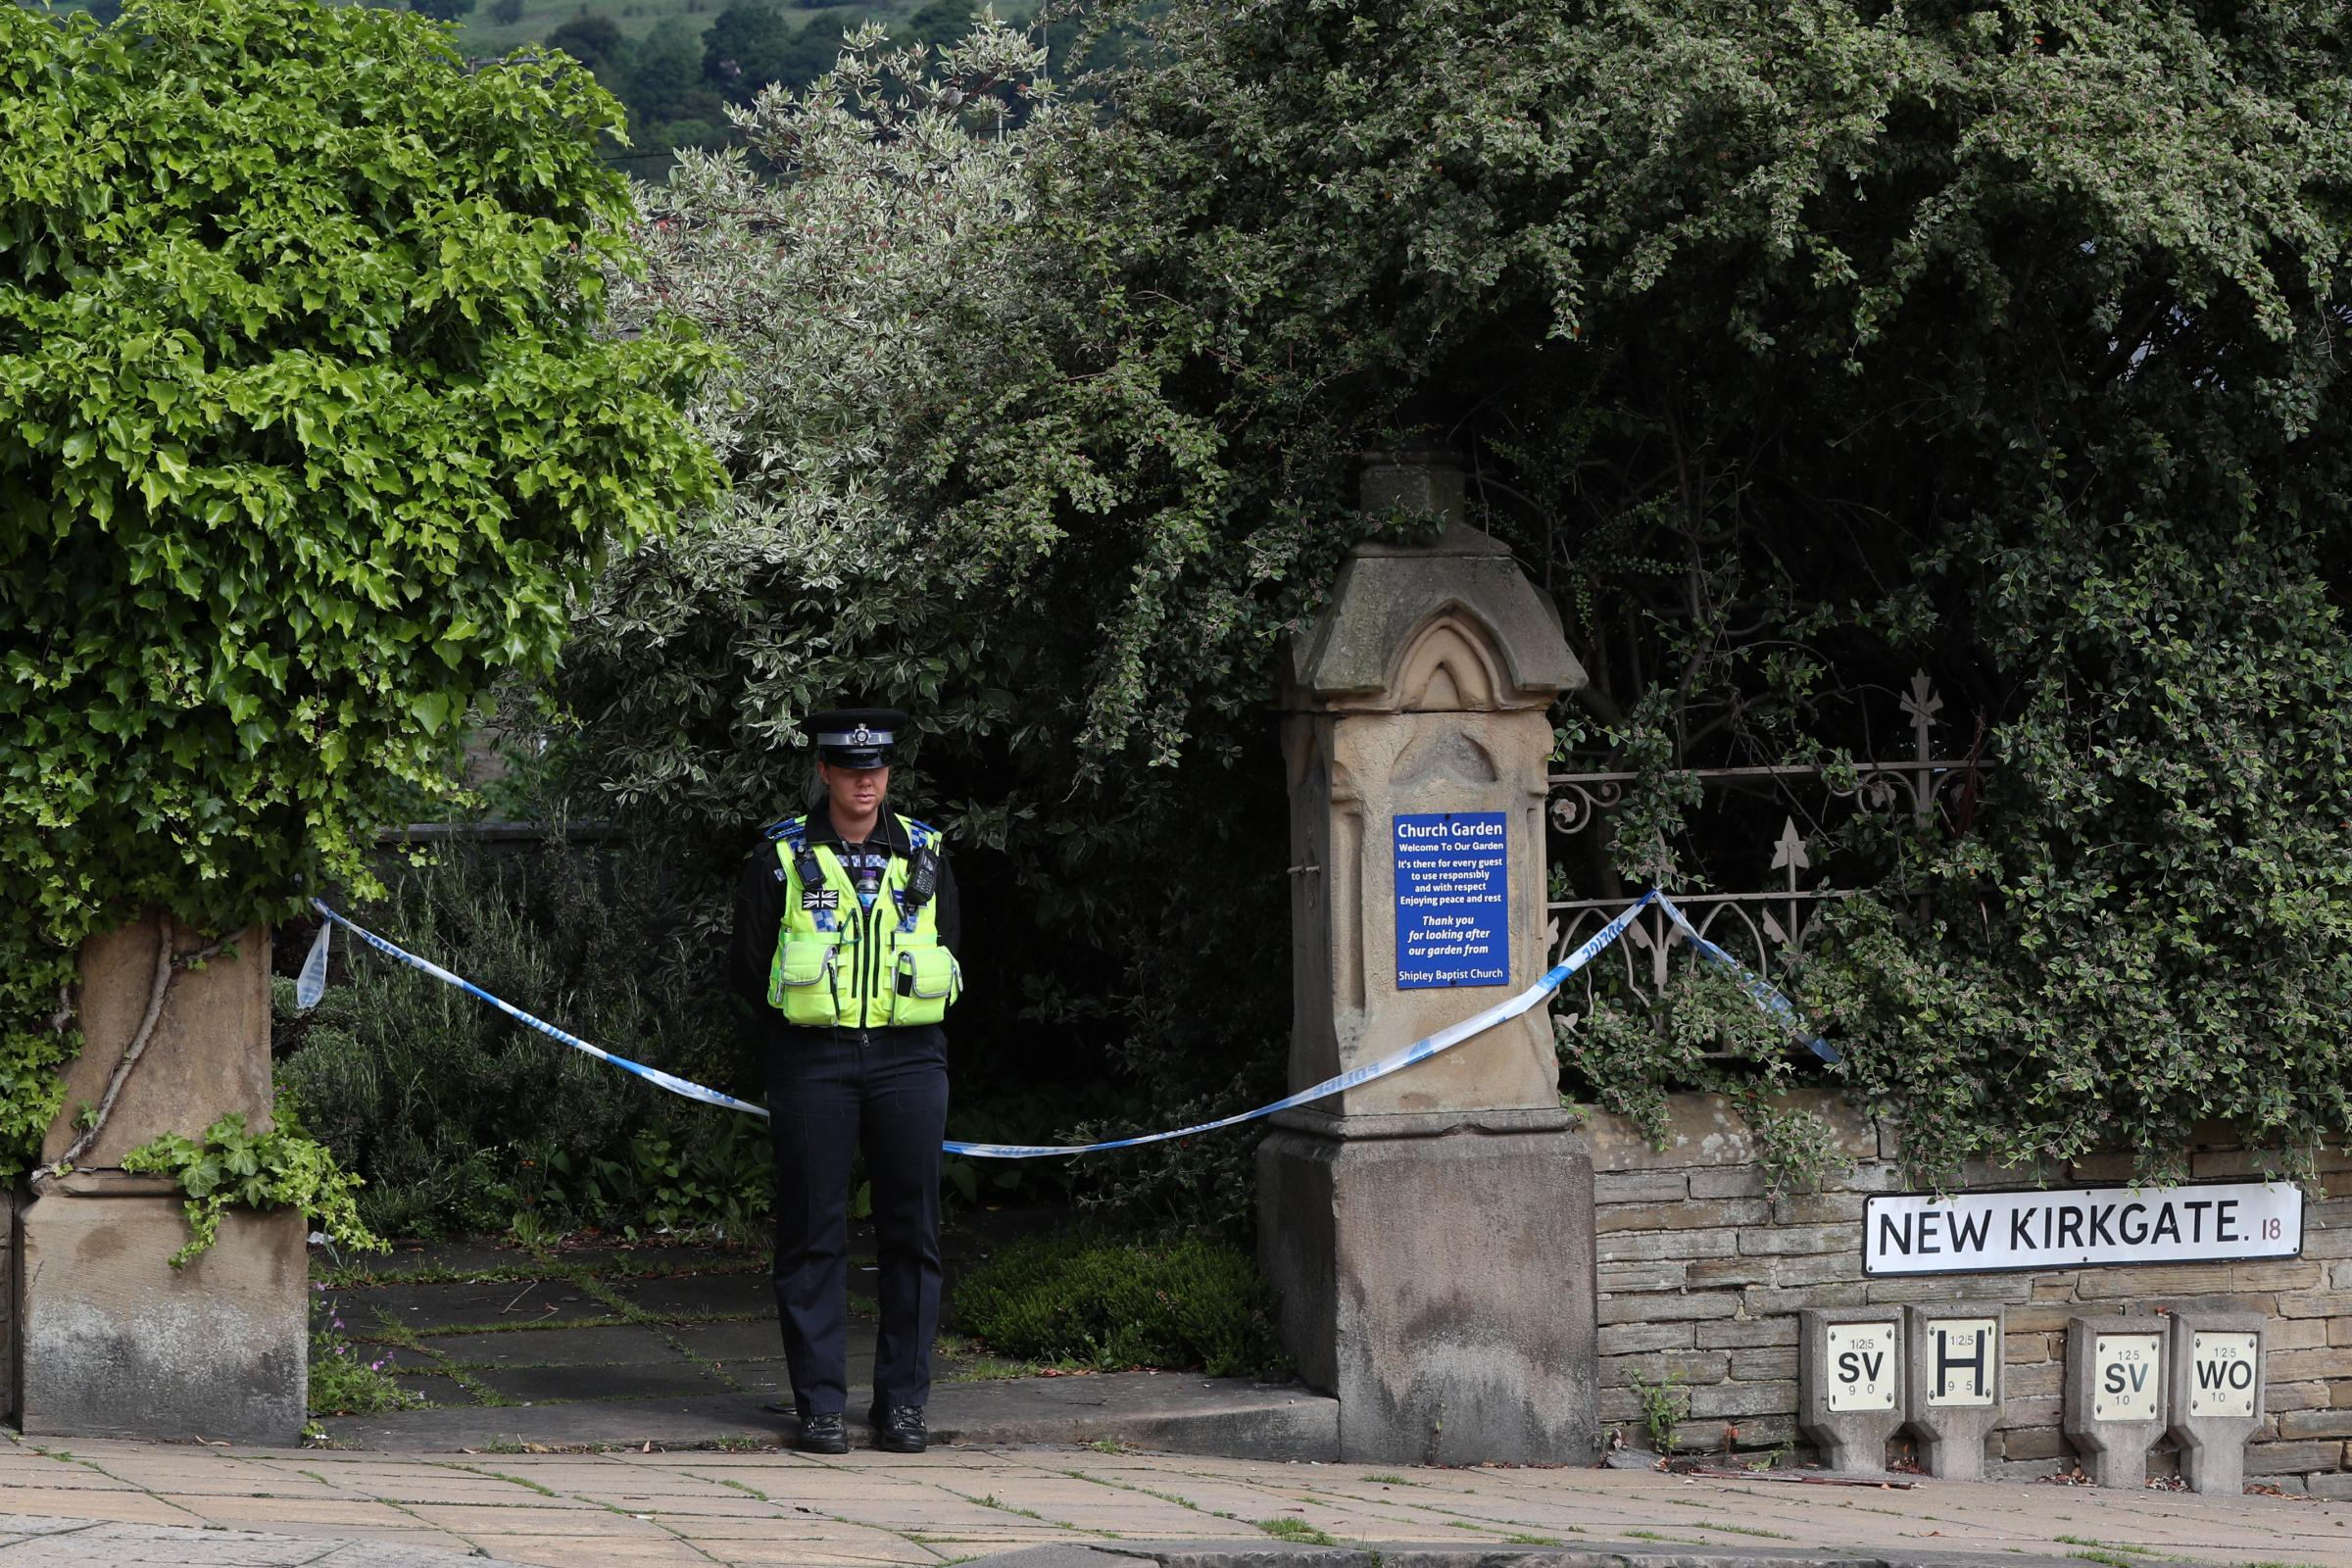 Police investigate report of serious sexual assault in Shipley